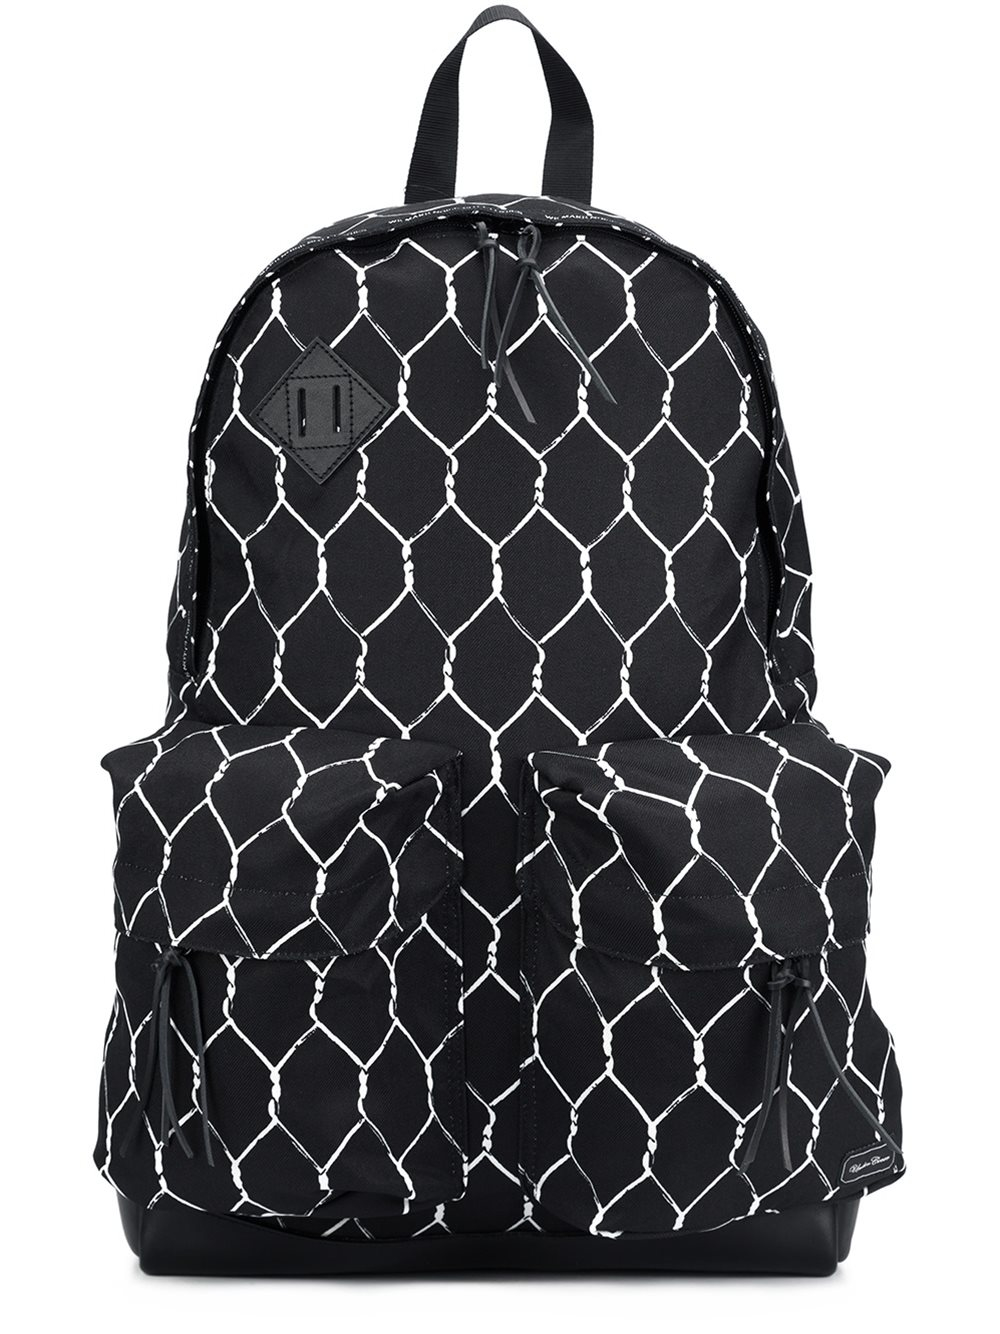 Undercover 39 x porter 39 fence print backpack in black for for Undercover x porter